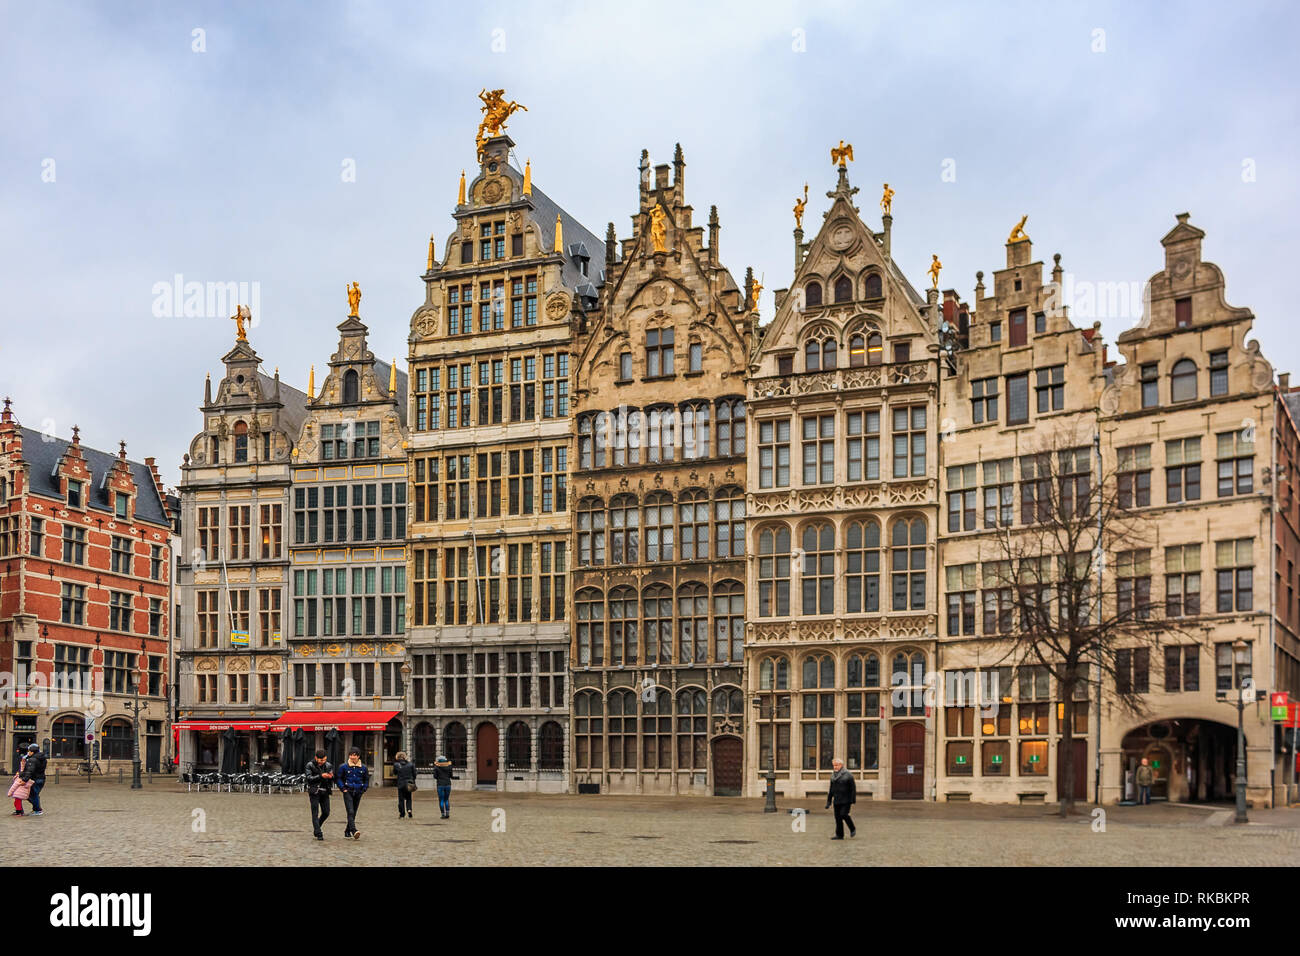 Cityscape with traditional gothic medieval guildhouses on Grote Markt square, Great Market square in old town Antwerp, Belgium - Stock Image